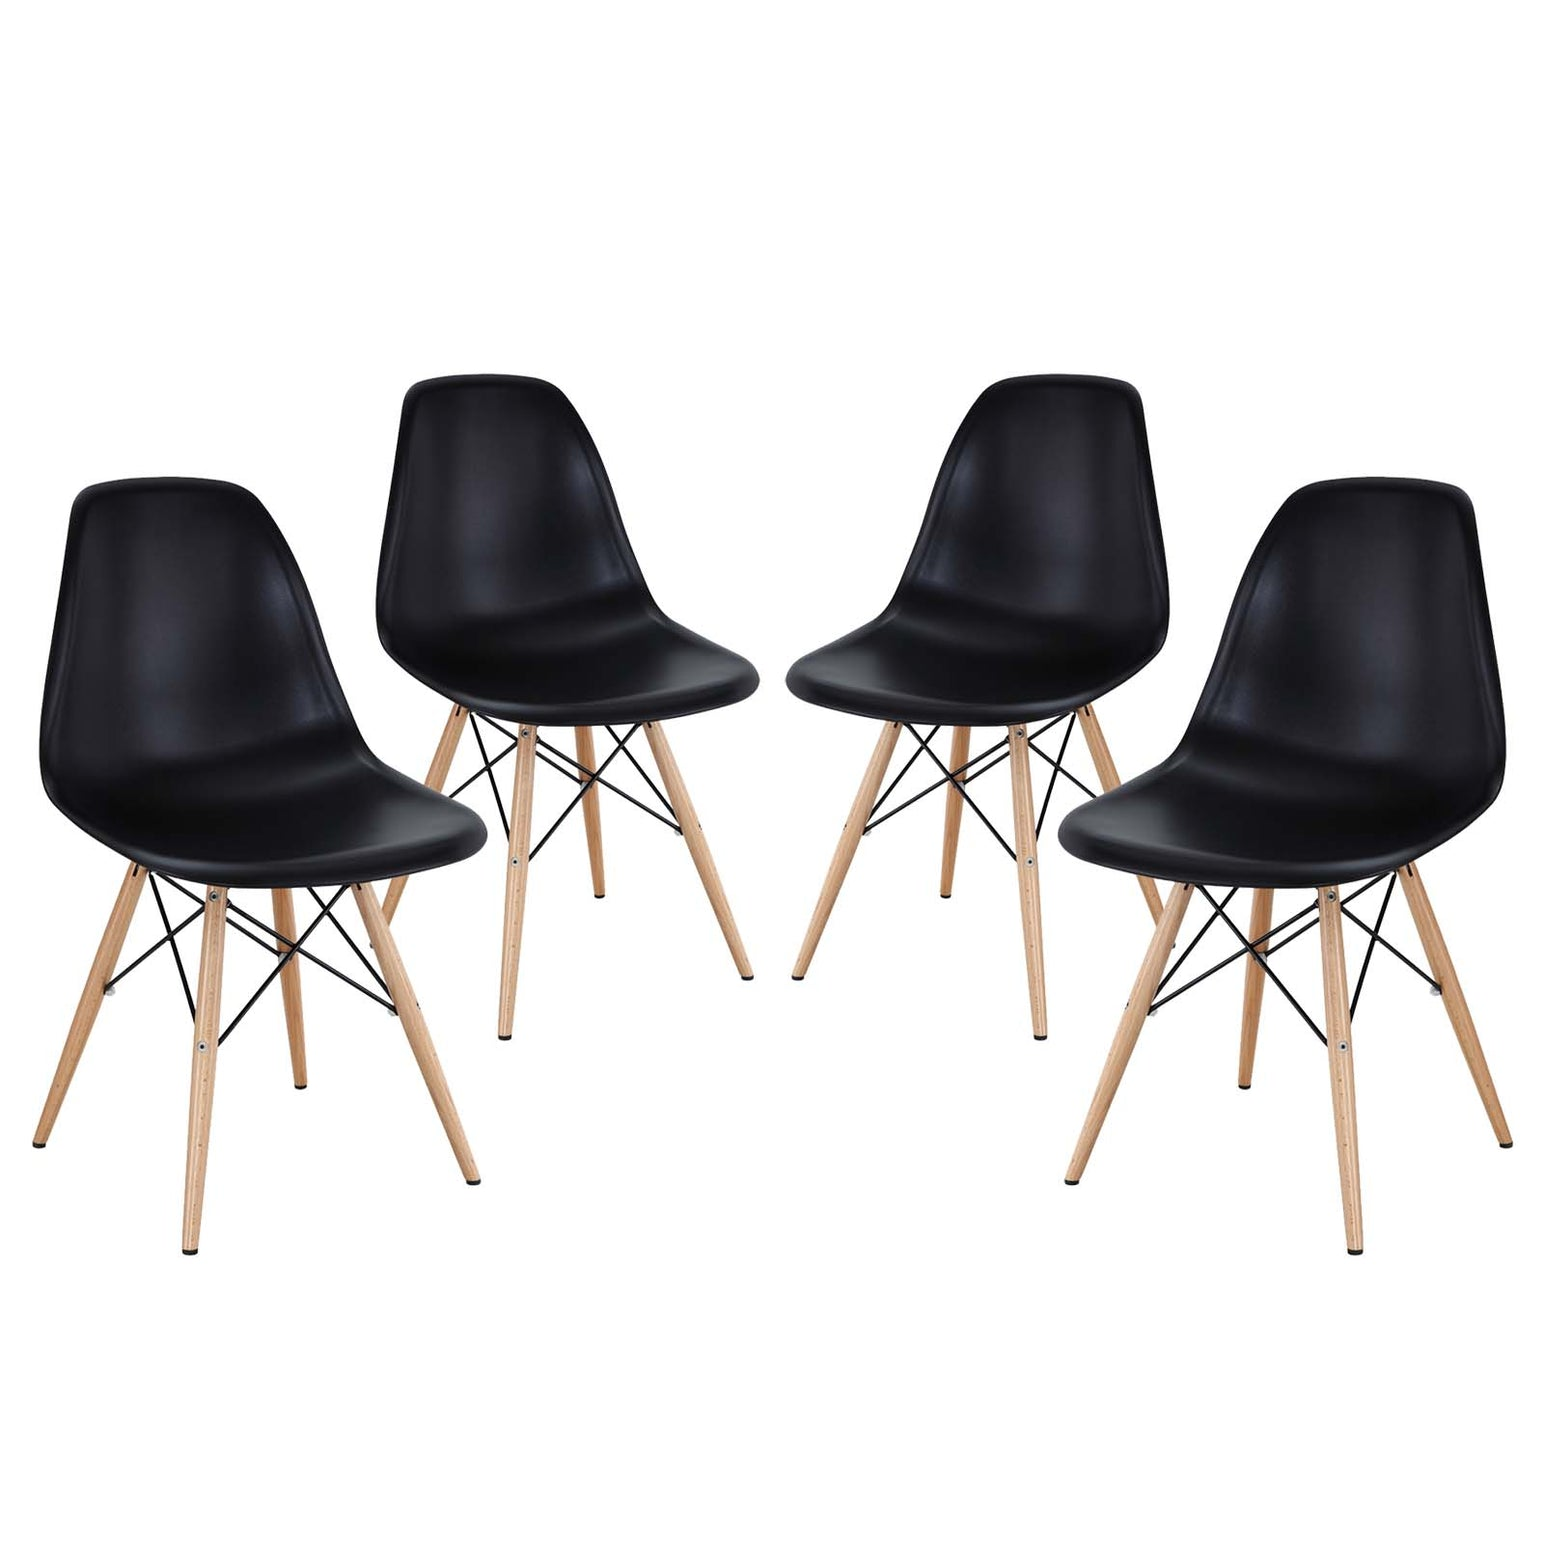 Pyramid Dining Side Chairs Set of 4 - Black